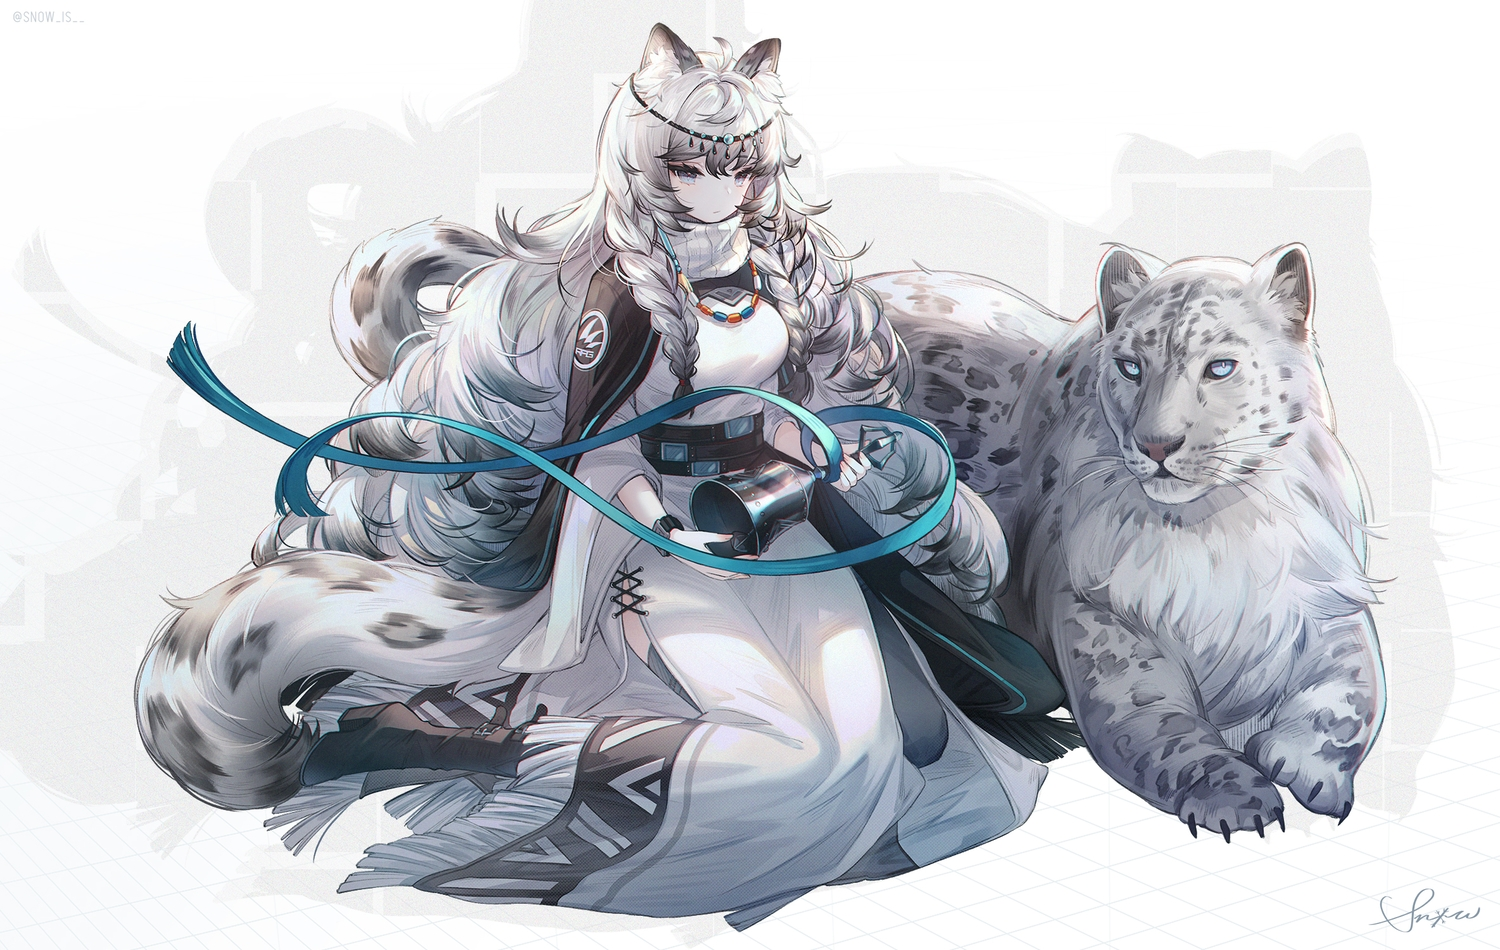 animal animal_ears arknights bell blue_eyes boots braids cape catgirl dress gray_hair headdress long_hair necklace pramanix_(arknights) ribbons signed snow_is tail watermark